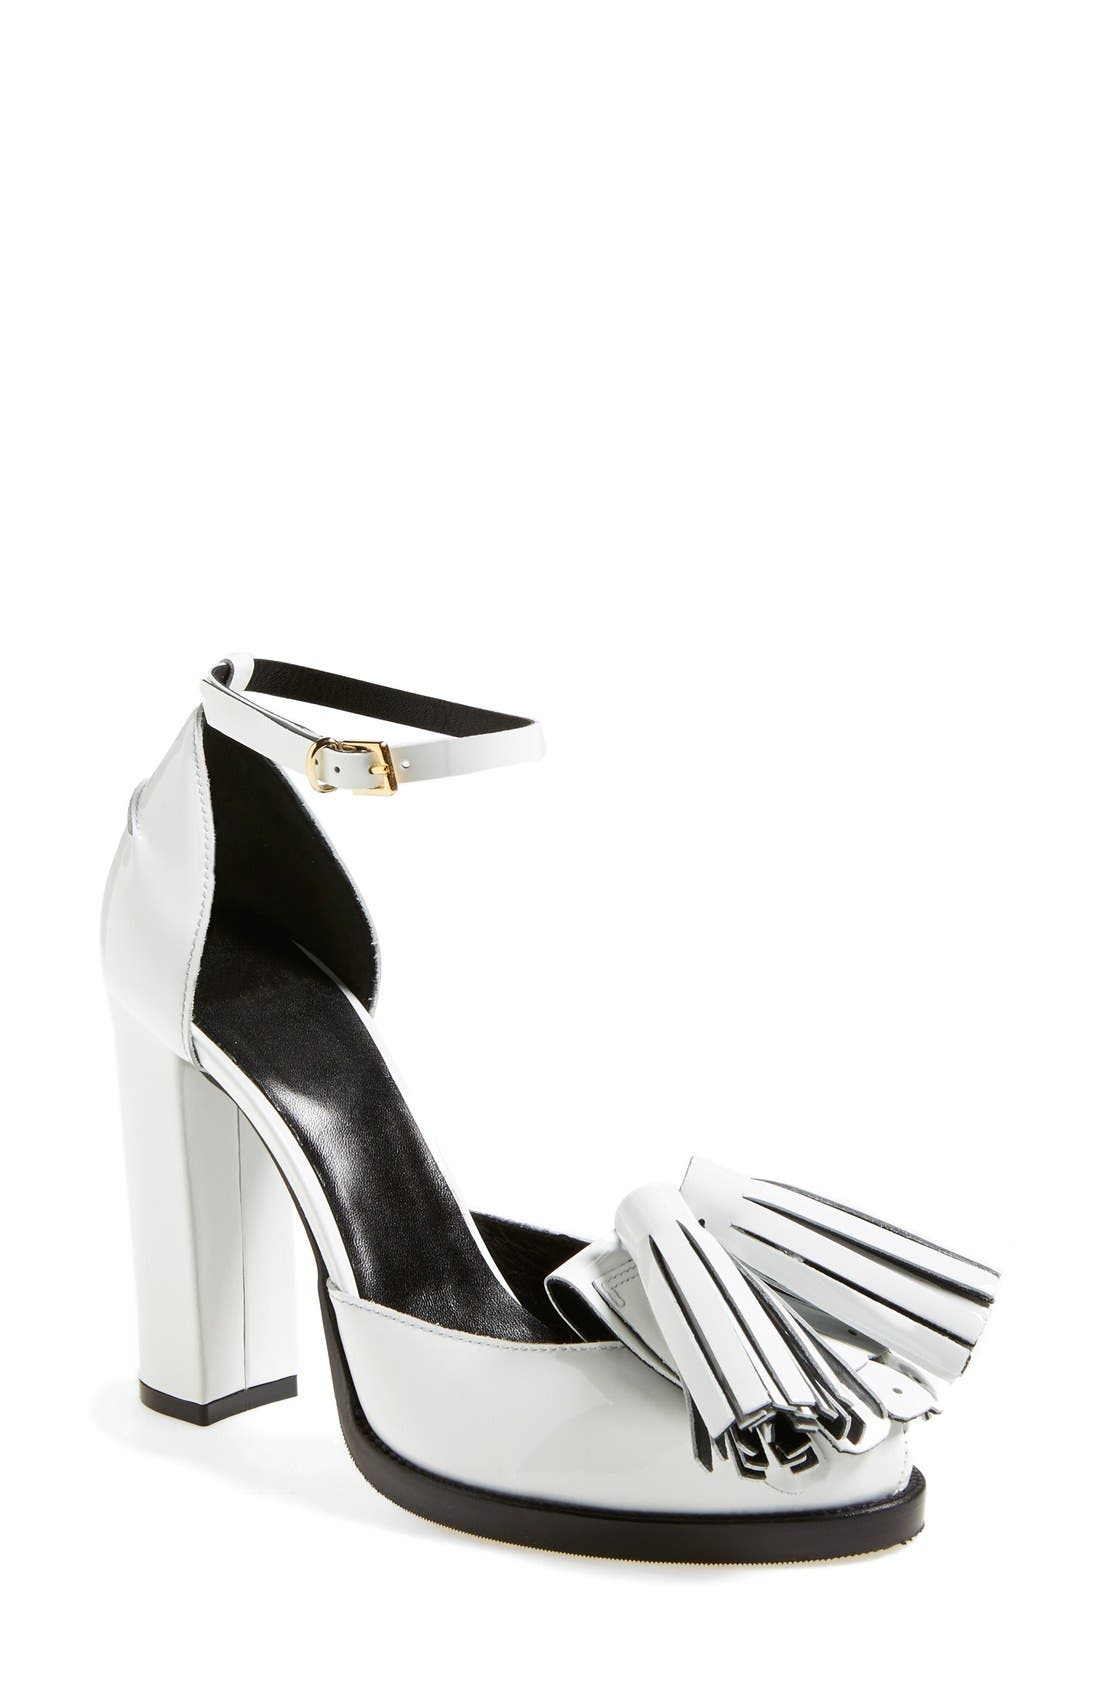 Alternate Image 1 Selected - MSGM Ankle Strap Pump (Women)